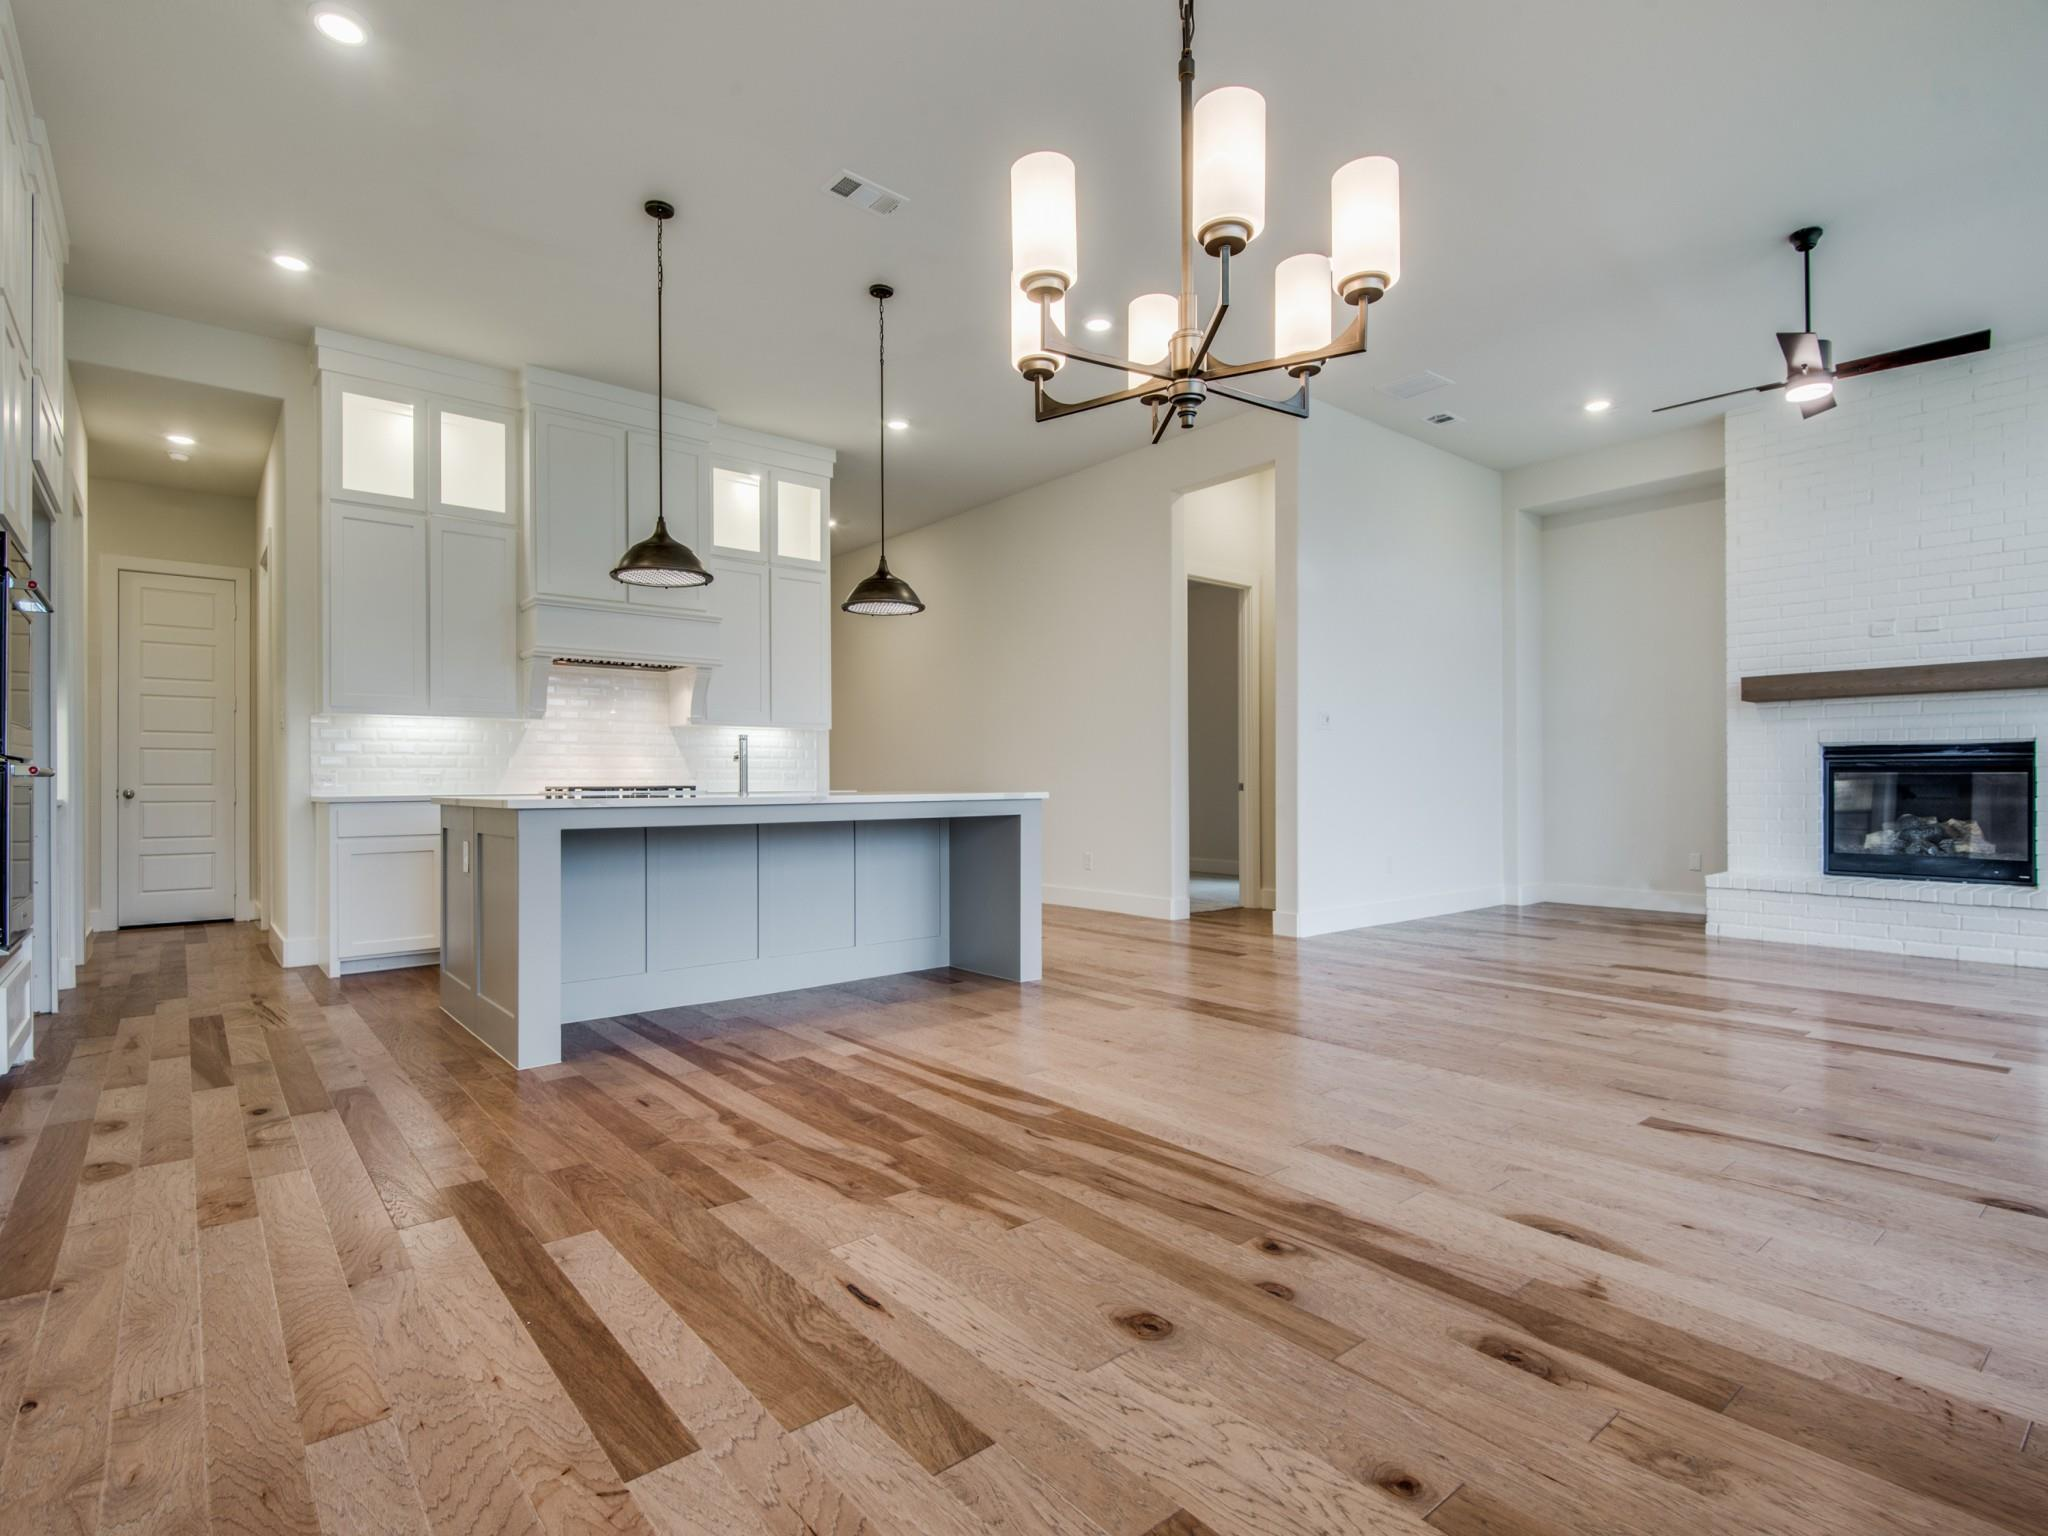 Kitchen featured in The Griffin II | 50213.1 By Southgate Homes in Dallas, TX